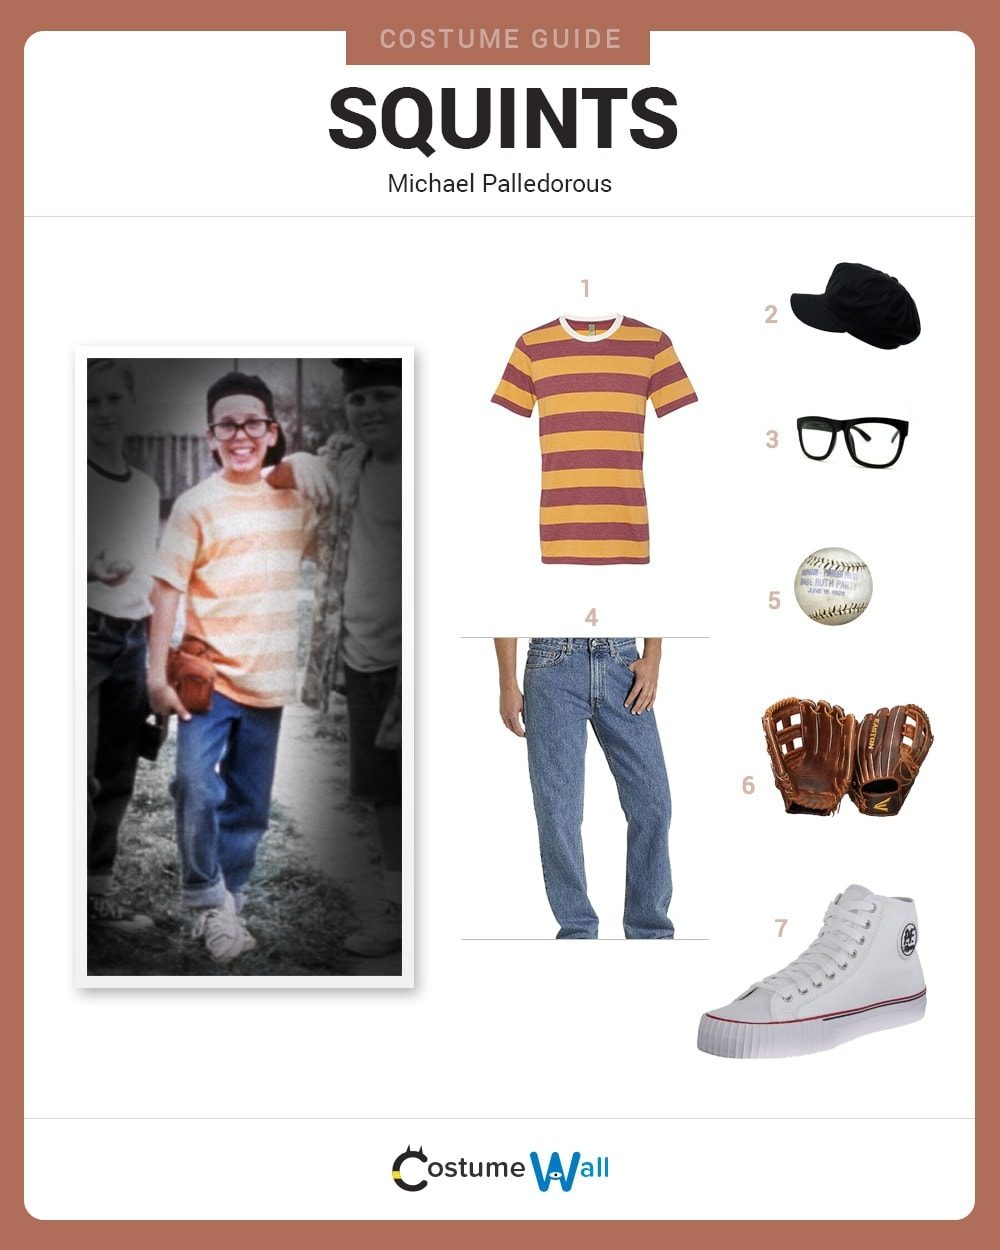 Squints Costume Guide